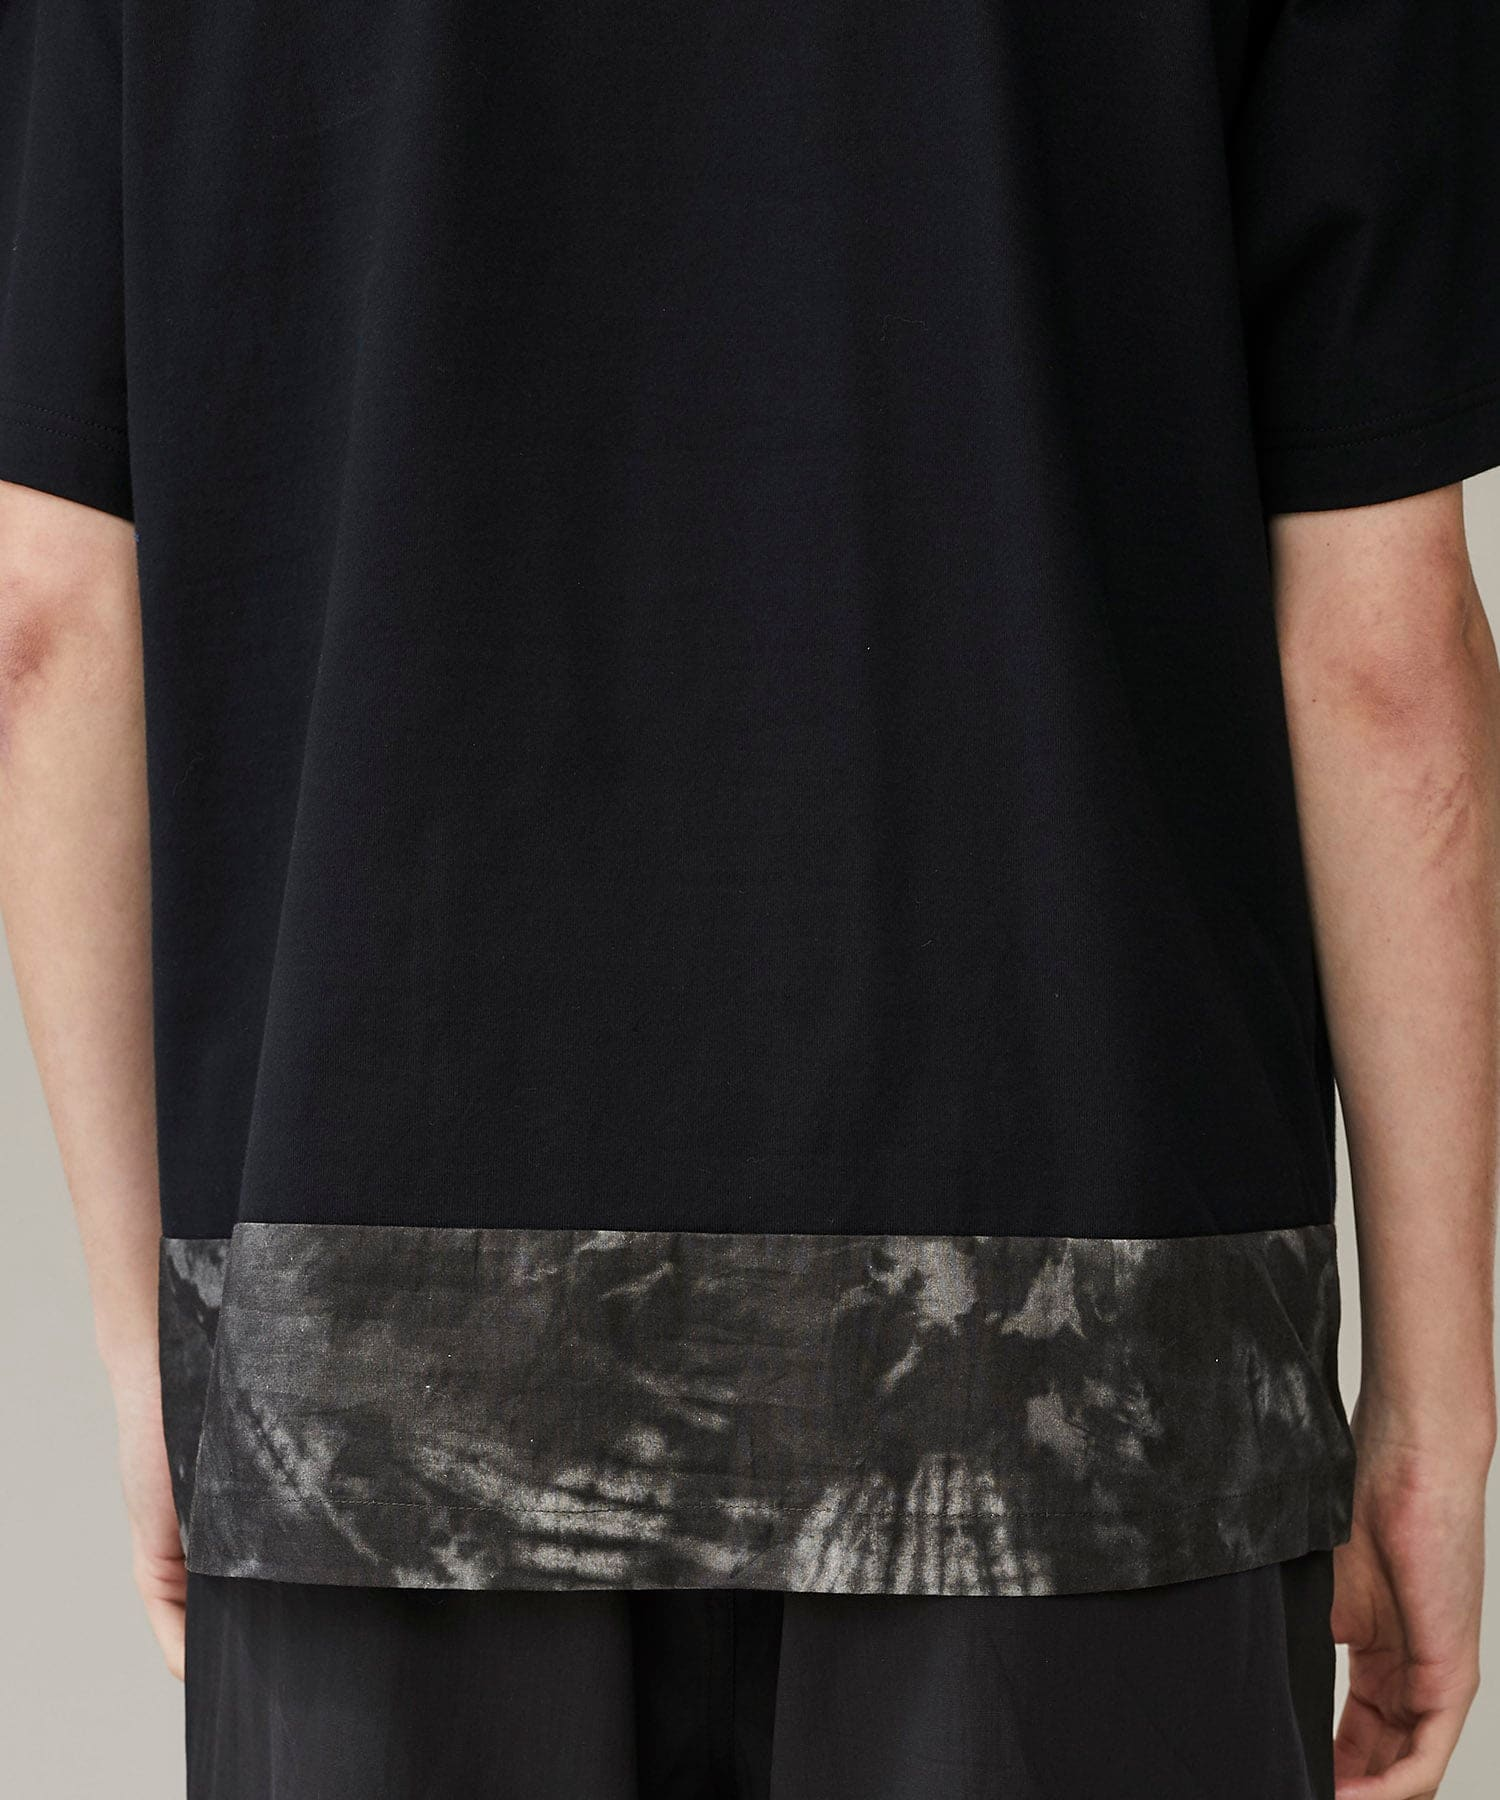 TIE DYE PRINTED SWITCHING T-SHIRT White Mountaineering